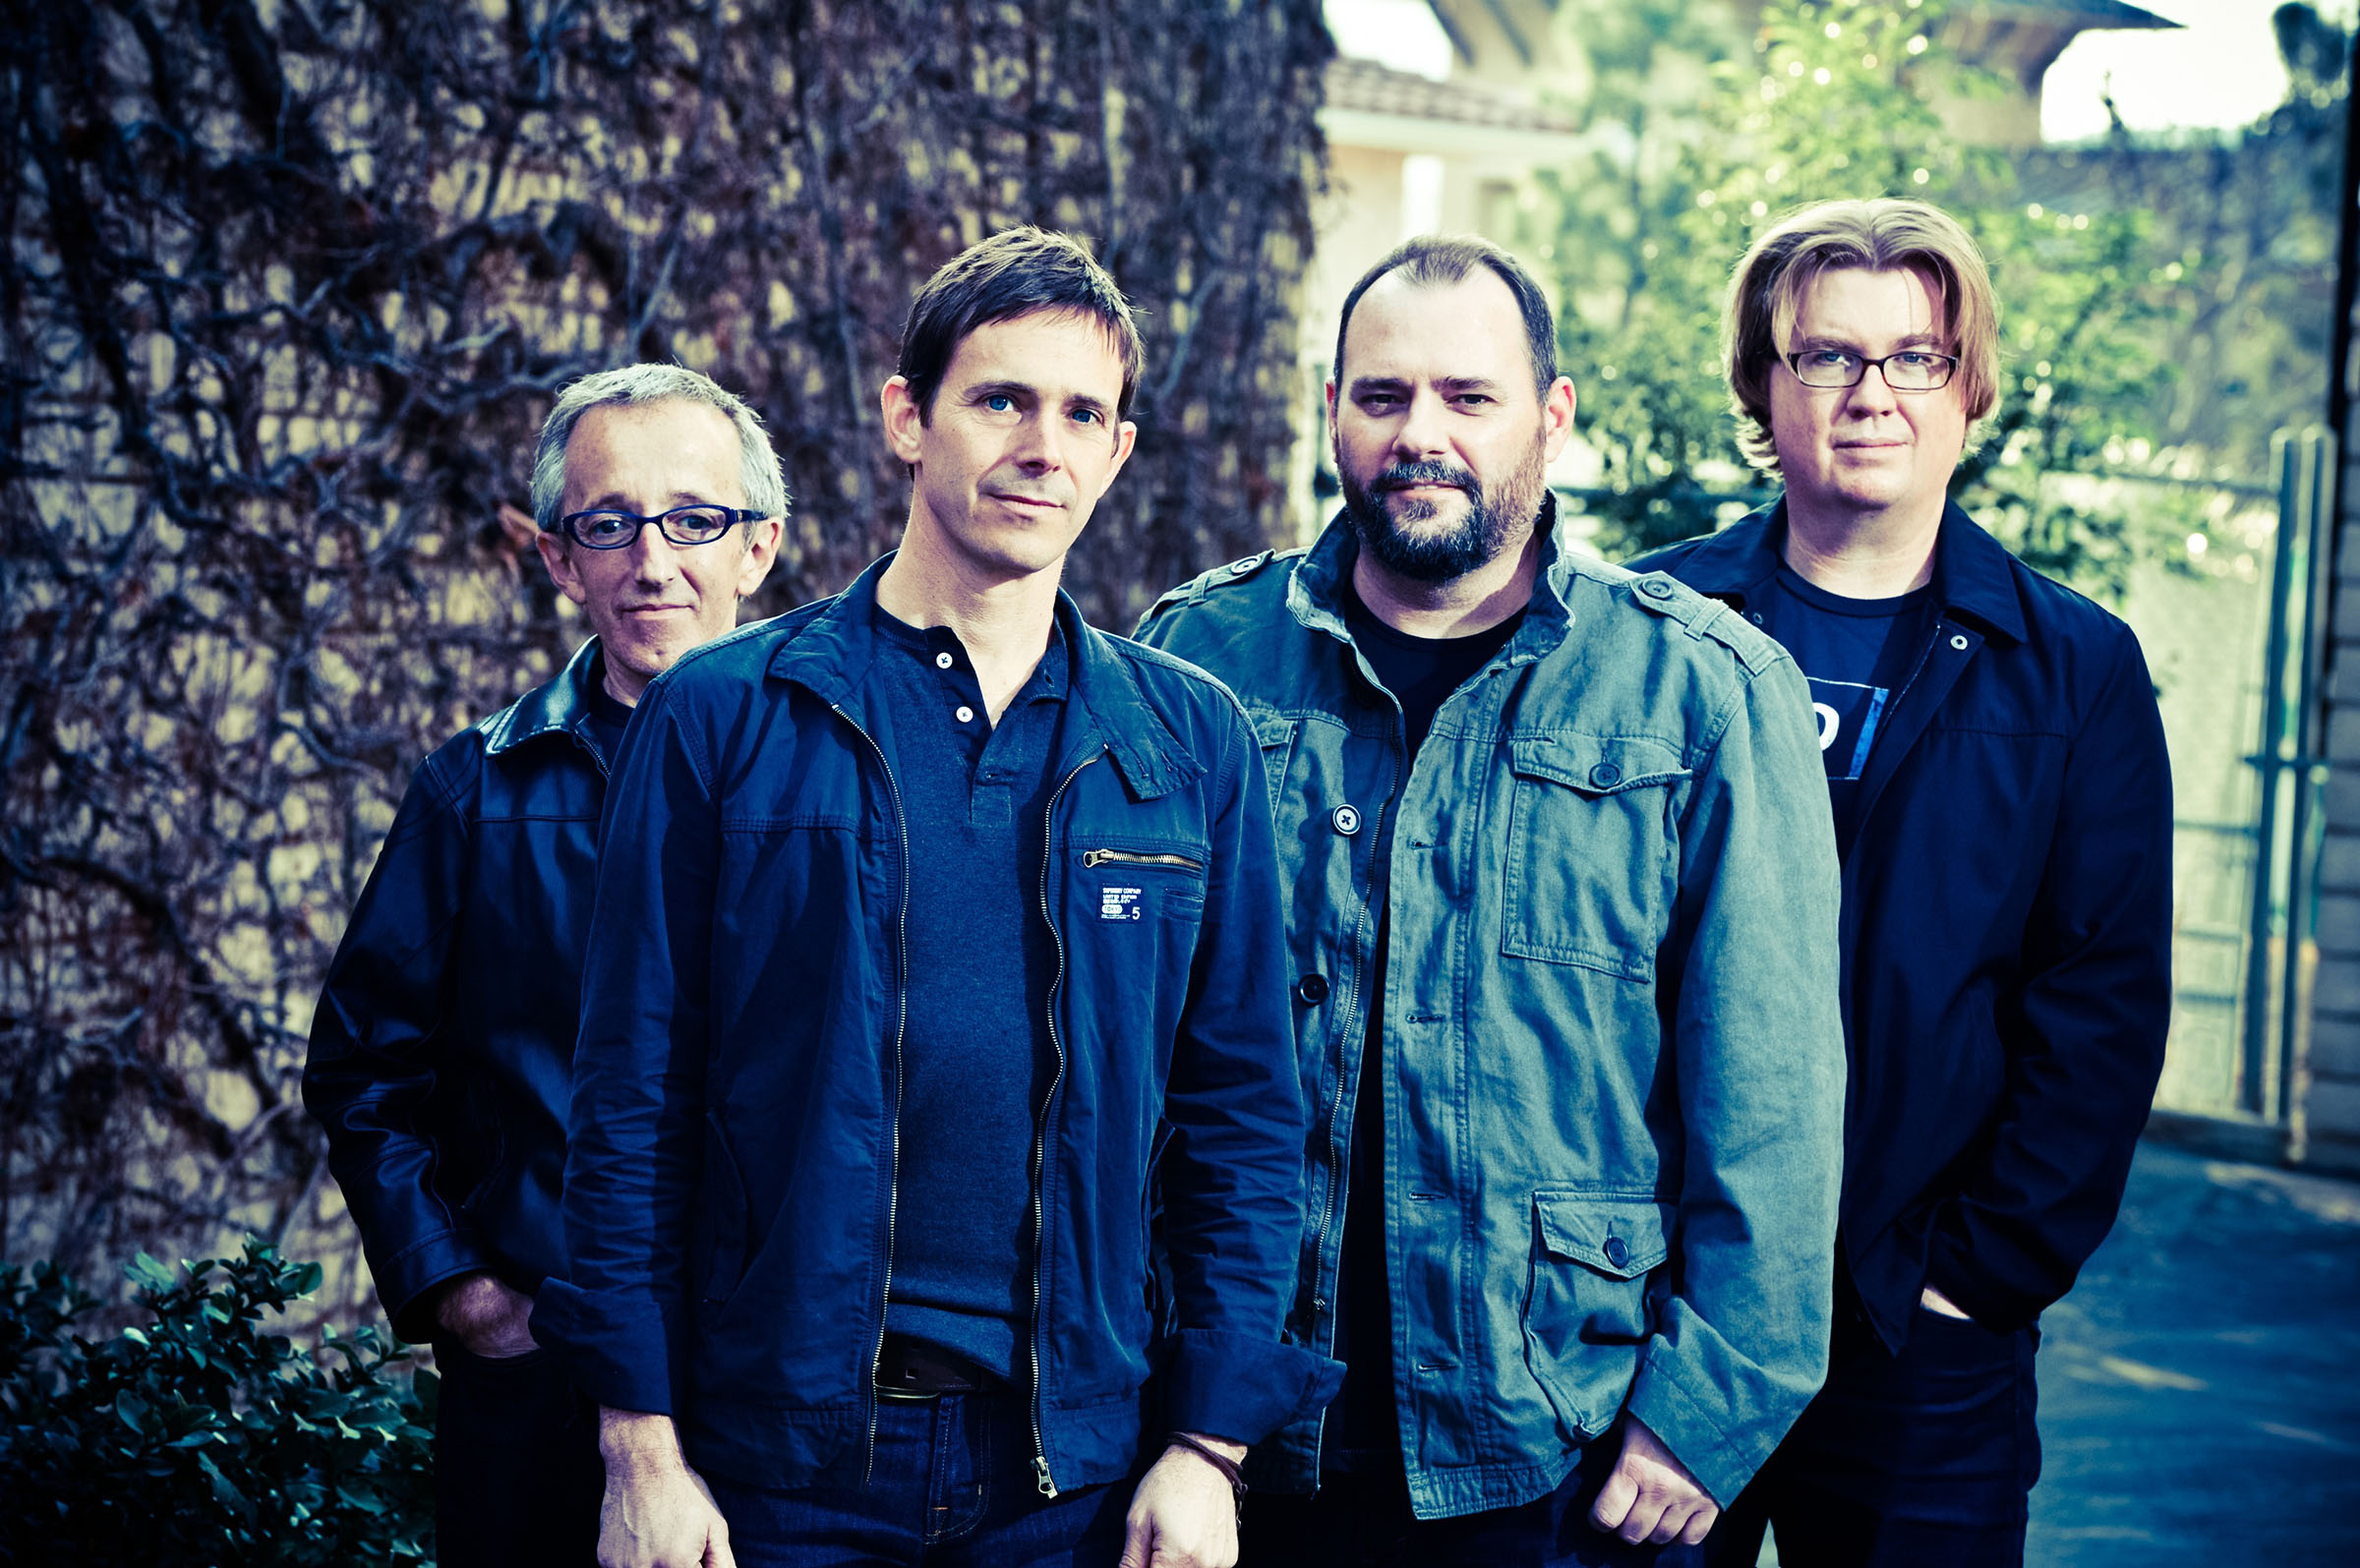 Toad The Wet Sprocket performs at Pechanga Resort & Casino June 26 and at Humphrey's Concerts by the Bay June 28. Photo by Rob Shanahan